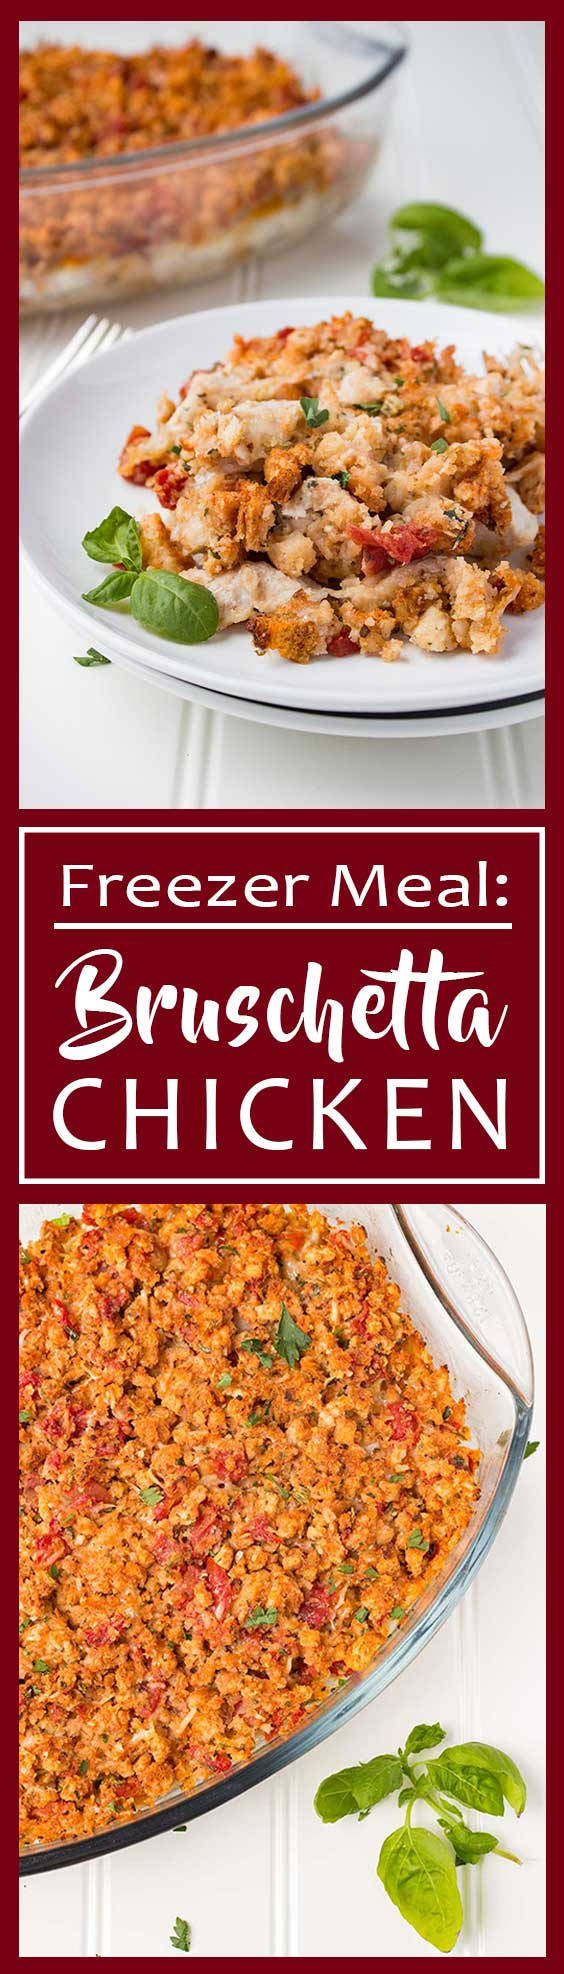 Freezer Meal: Bruschetta Chicken | An homage to the classic Bruschetta Chicken, but in an easy-to-make and easy-to-freeze casserole!